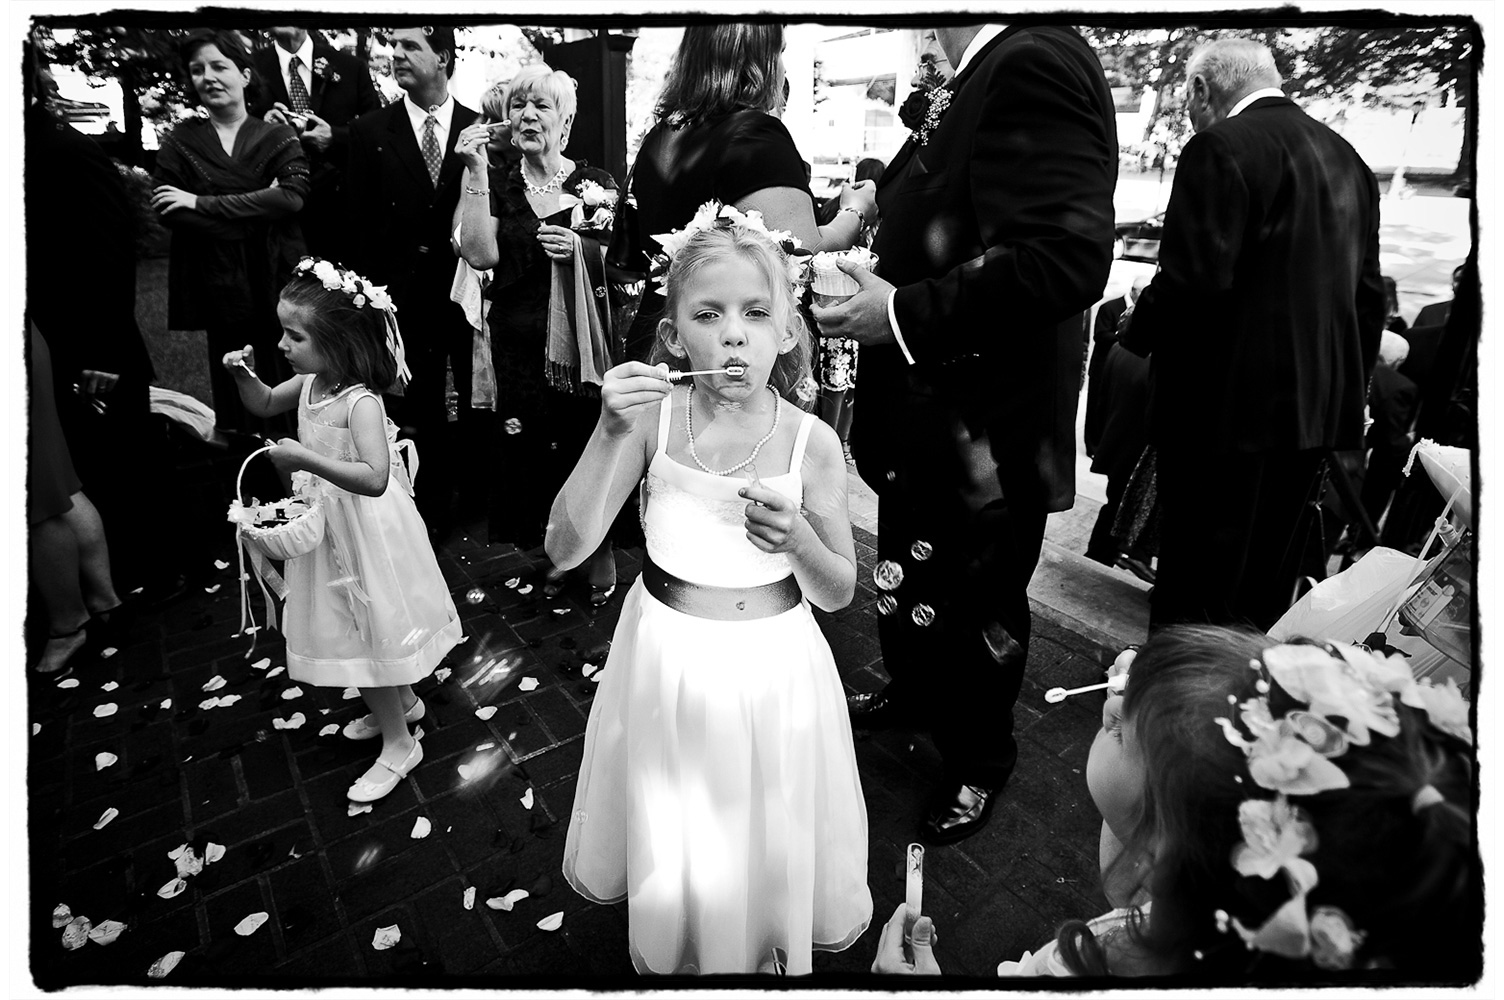 A flower girl blows bubbles at the base of church steps in Brooklyn.